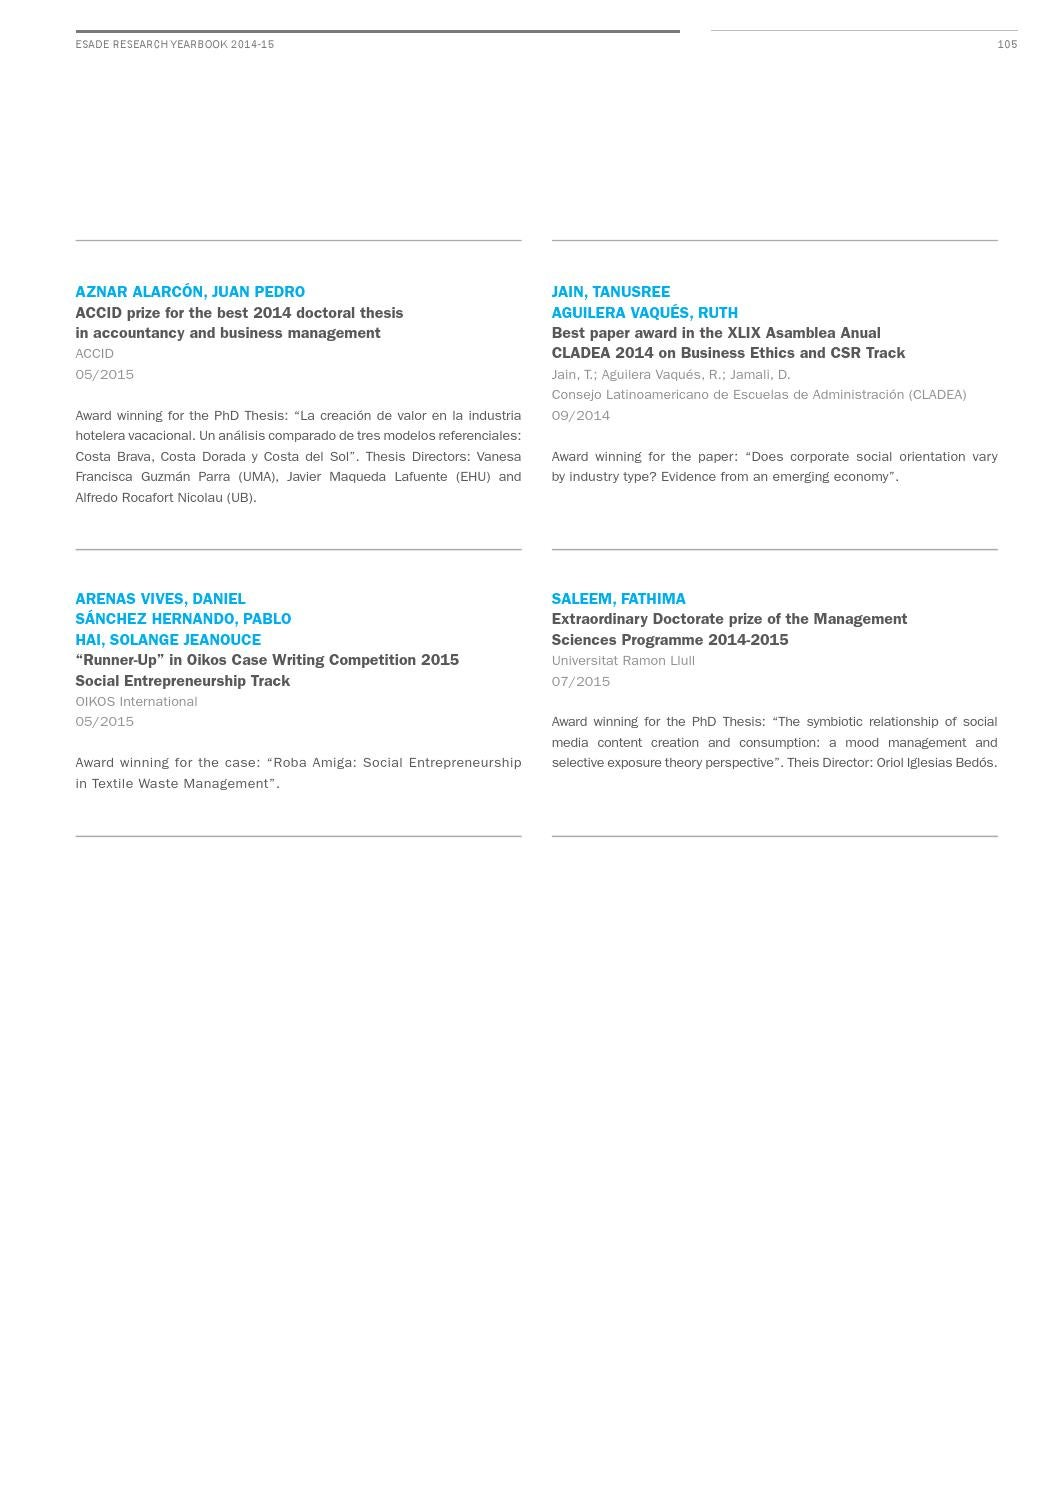 Research yearbook 2014 2015 by ESADE - issuu